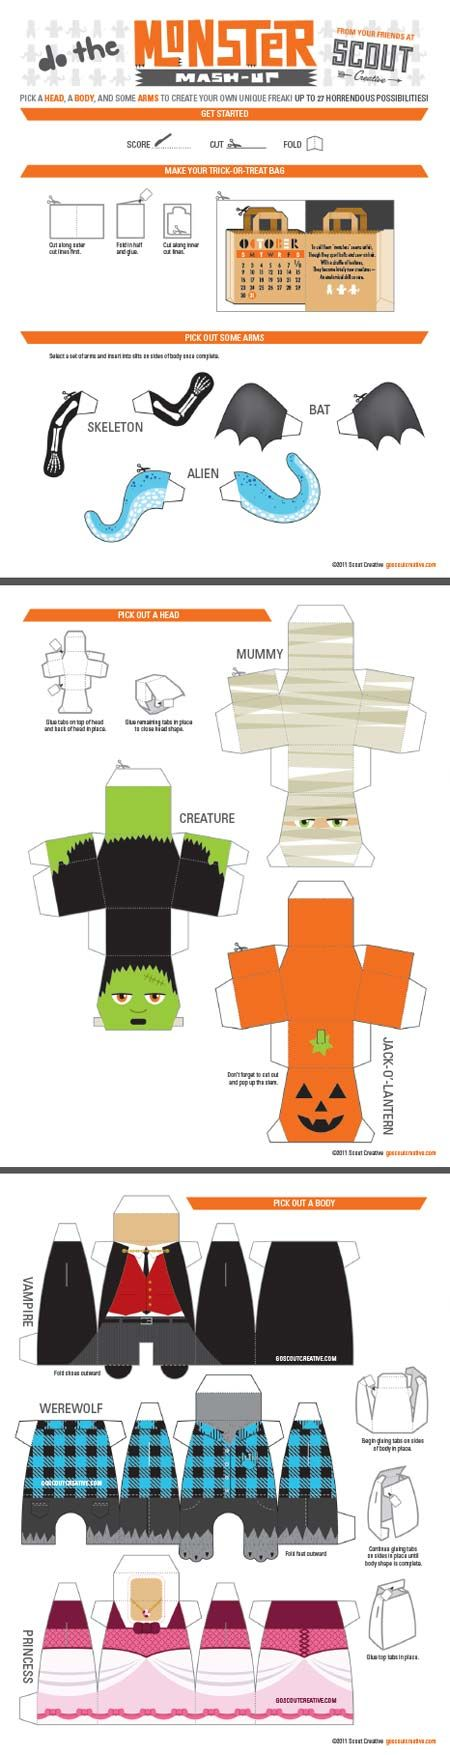 Monster mash paper toys and halloween on pinterest for Paper mashing craft